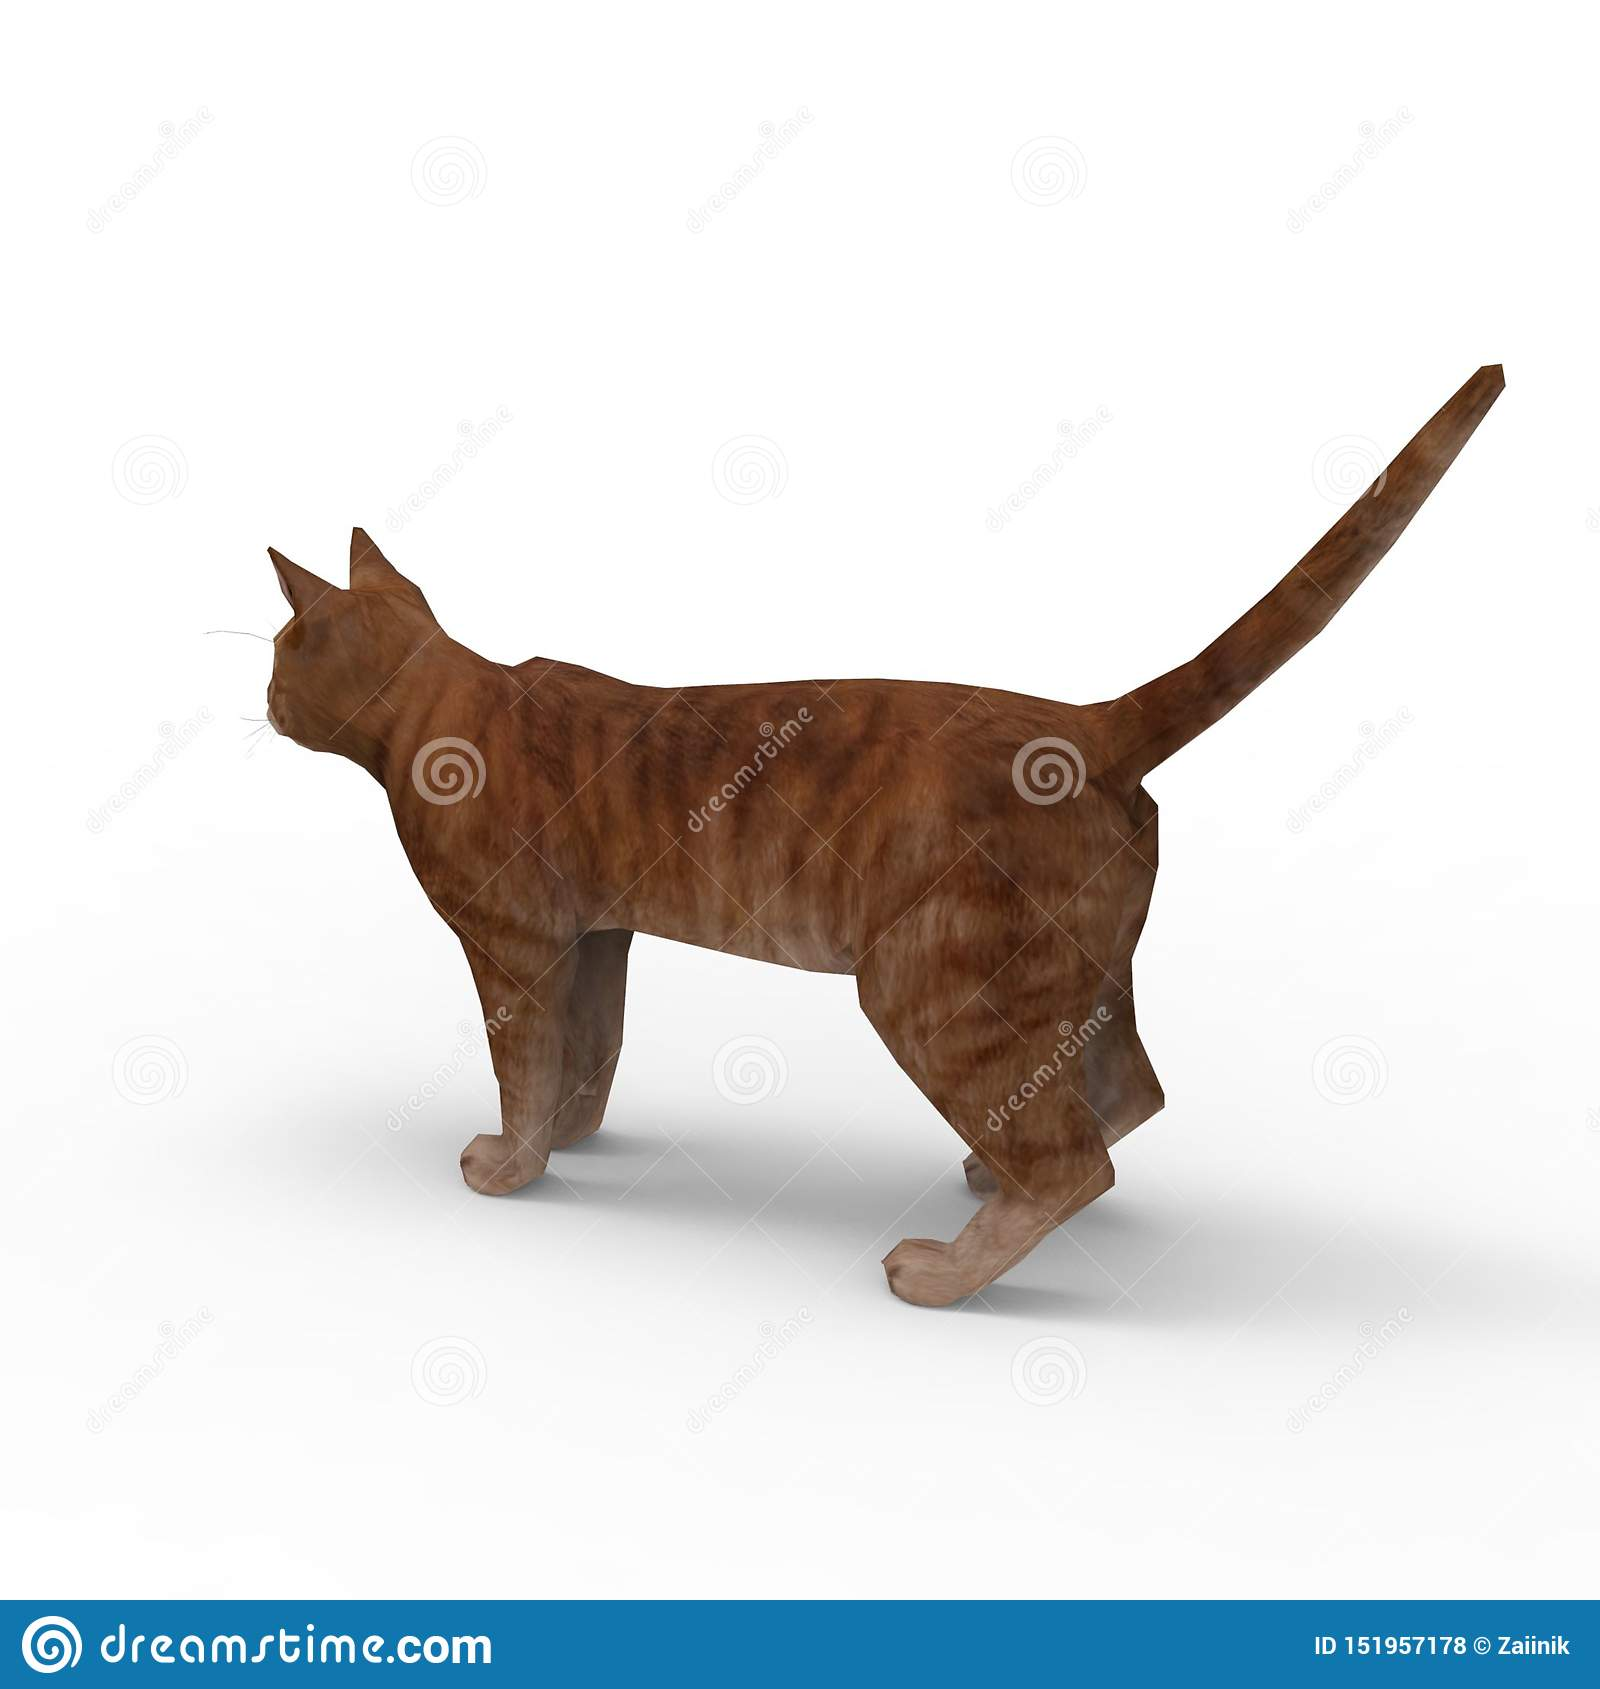 3d Rendering Of Cat Created By Using A Blender Tool Stock